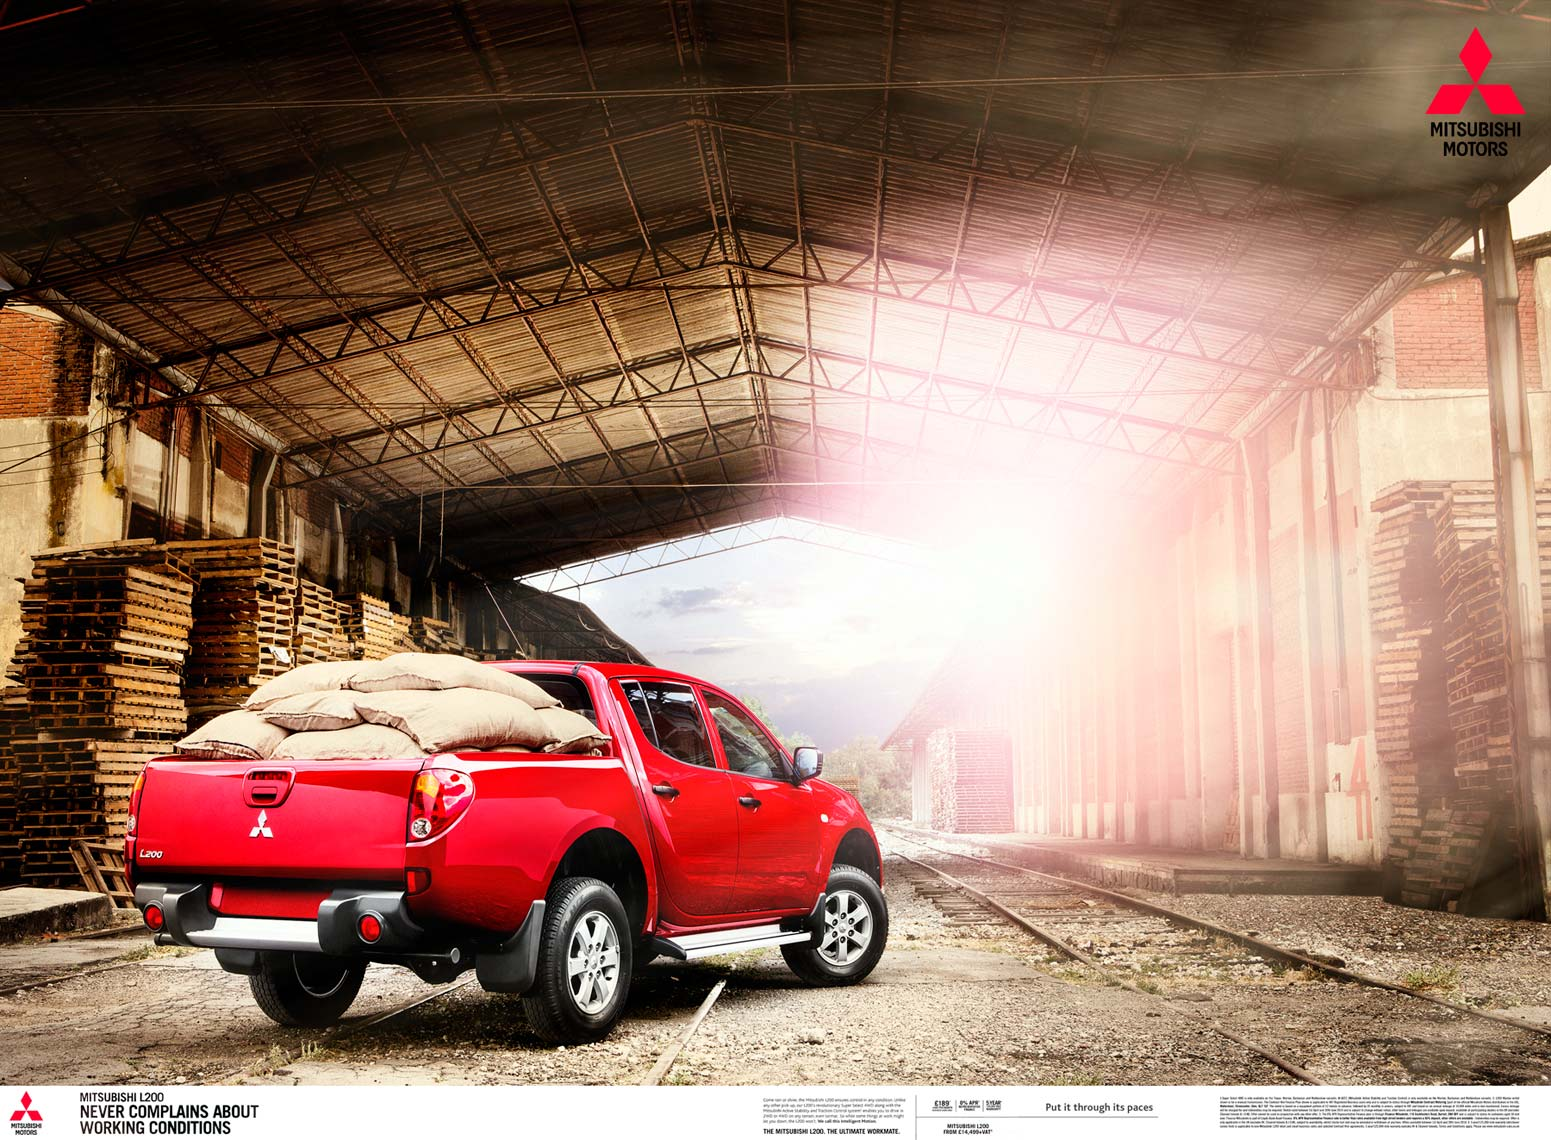 Chris_Hunt_Photography_Automotive_Advertising_Mitsubishi_0487